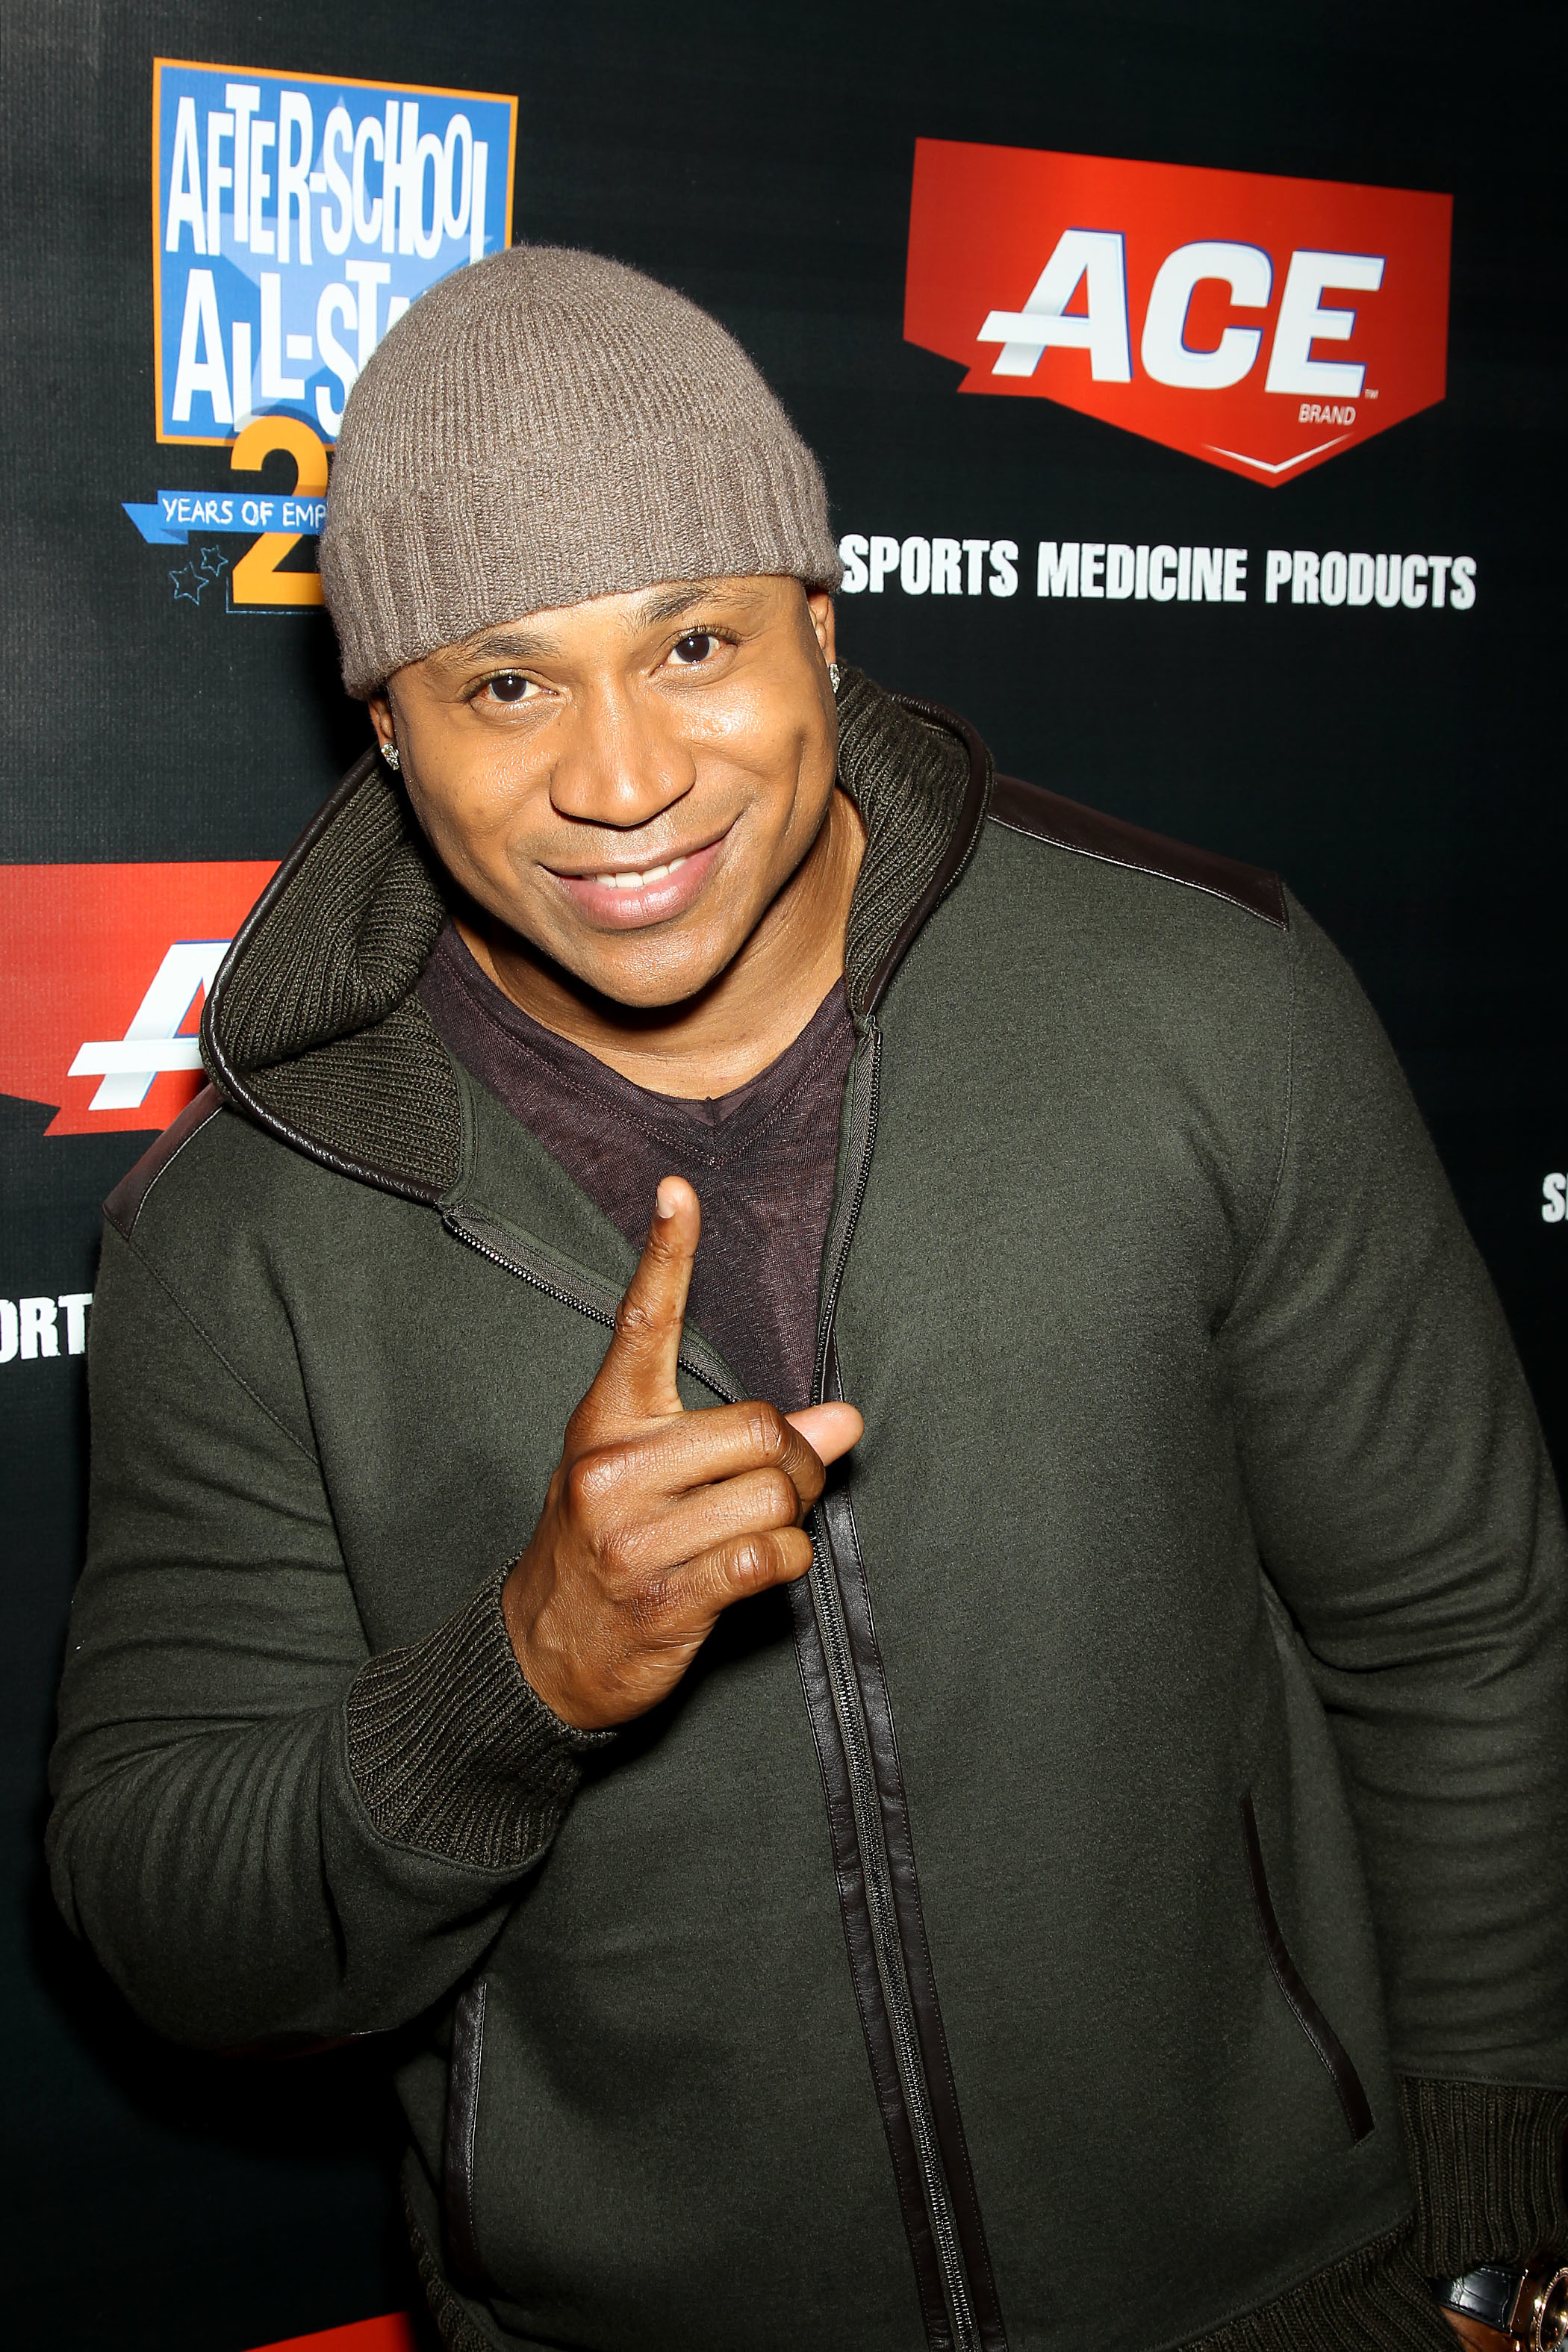 LL Cool J Ace brand A Game Challenge